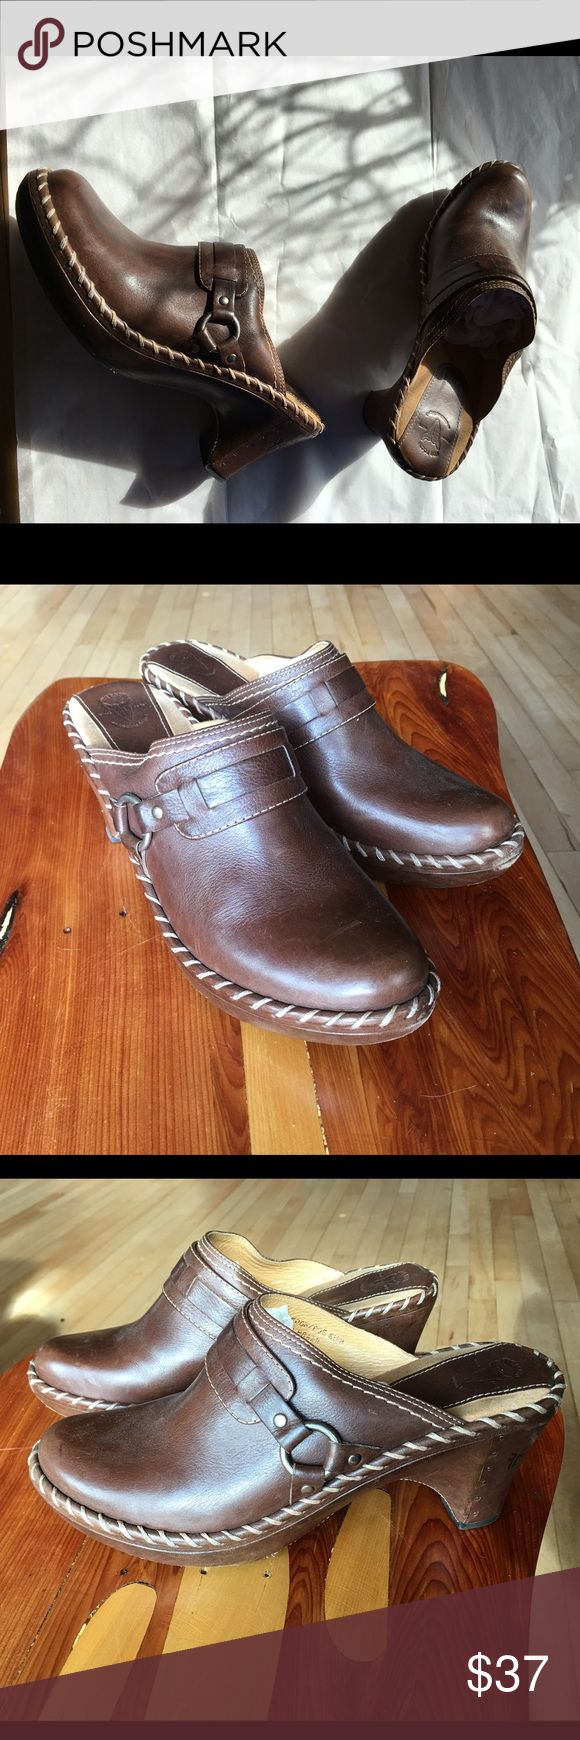 Frye mule clogs Comfy leather mile clogs. Size 8.5 some light scuffs but still looks nice. Frye Shoes Mules & Clogs